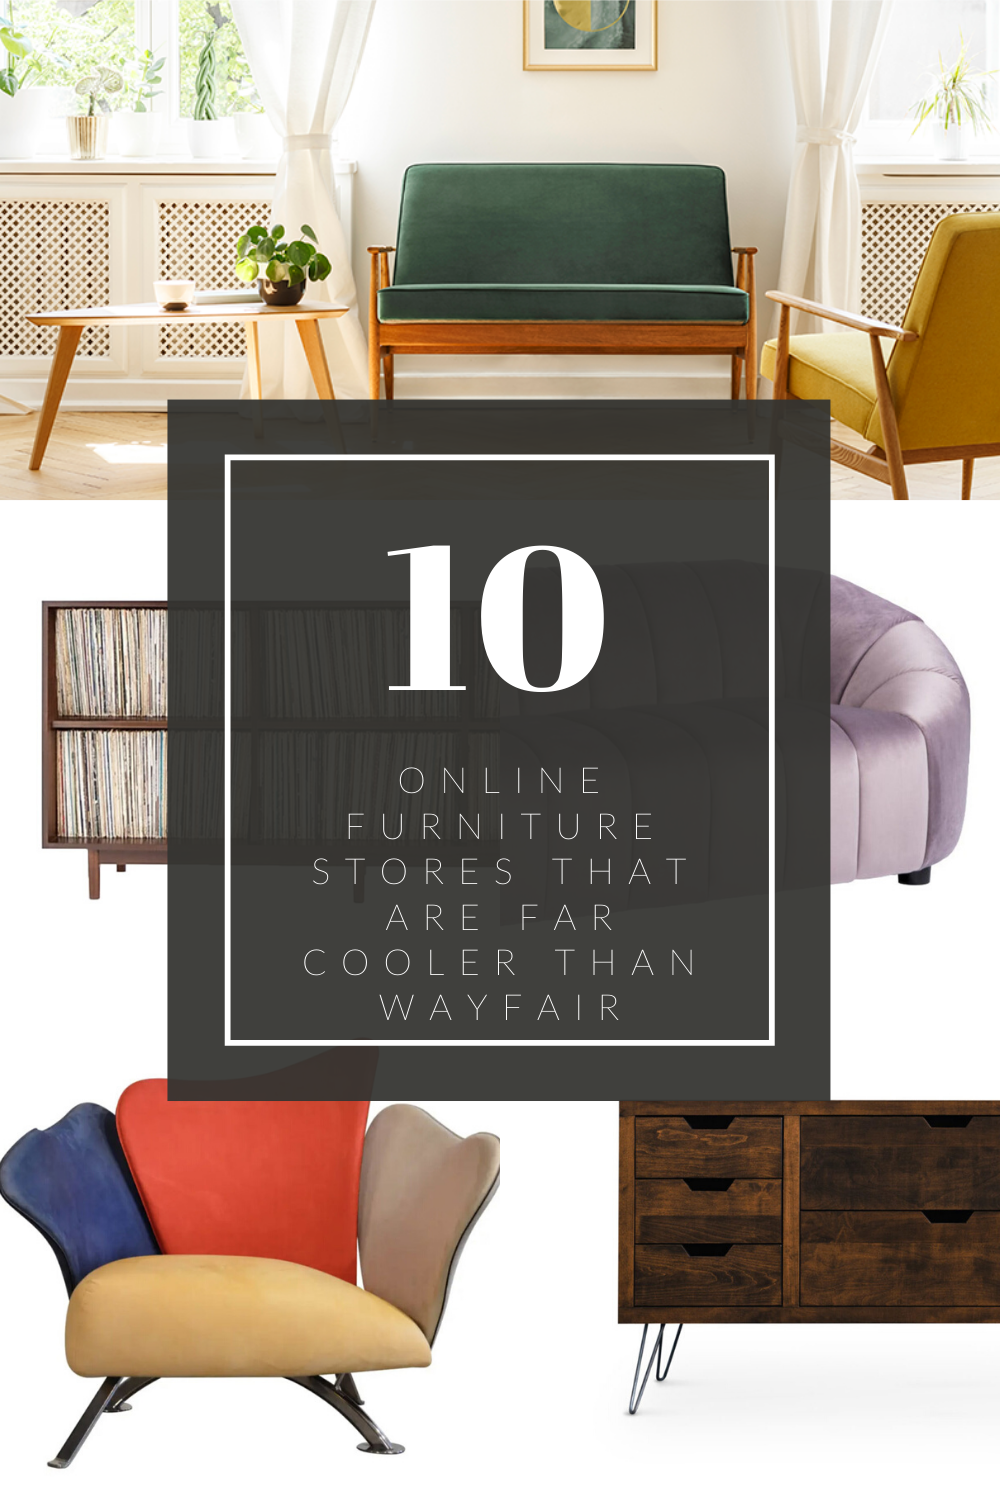 10 Online Furniture Stores That Are Far Cooler Than Wayfair Online Furniture Furniture Store Online Furniture Stores